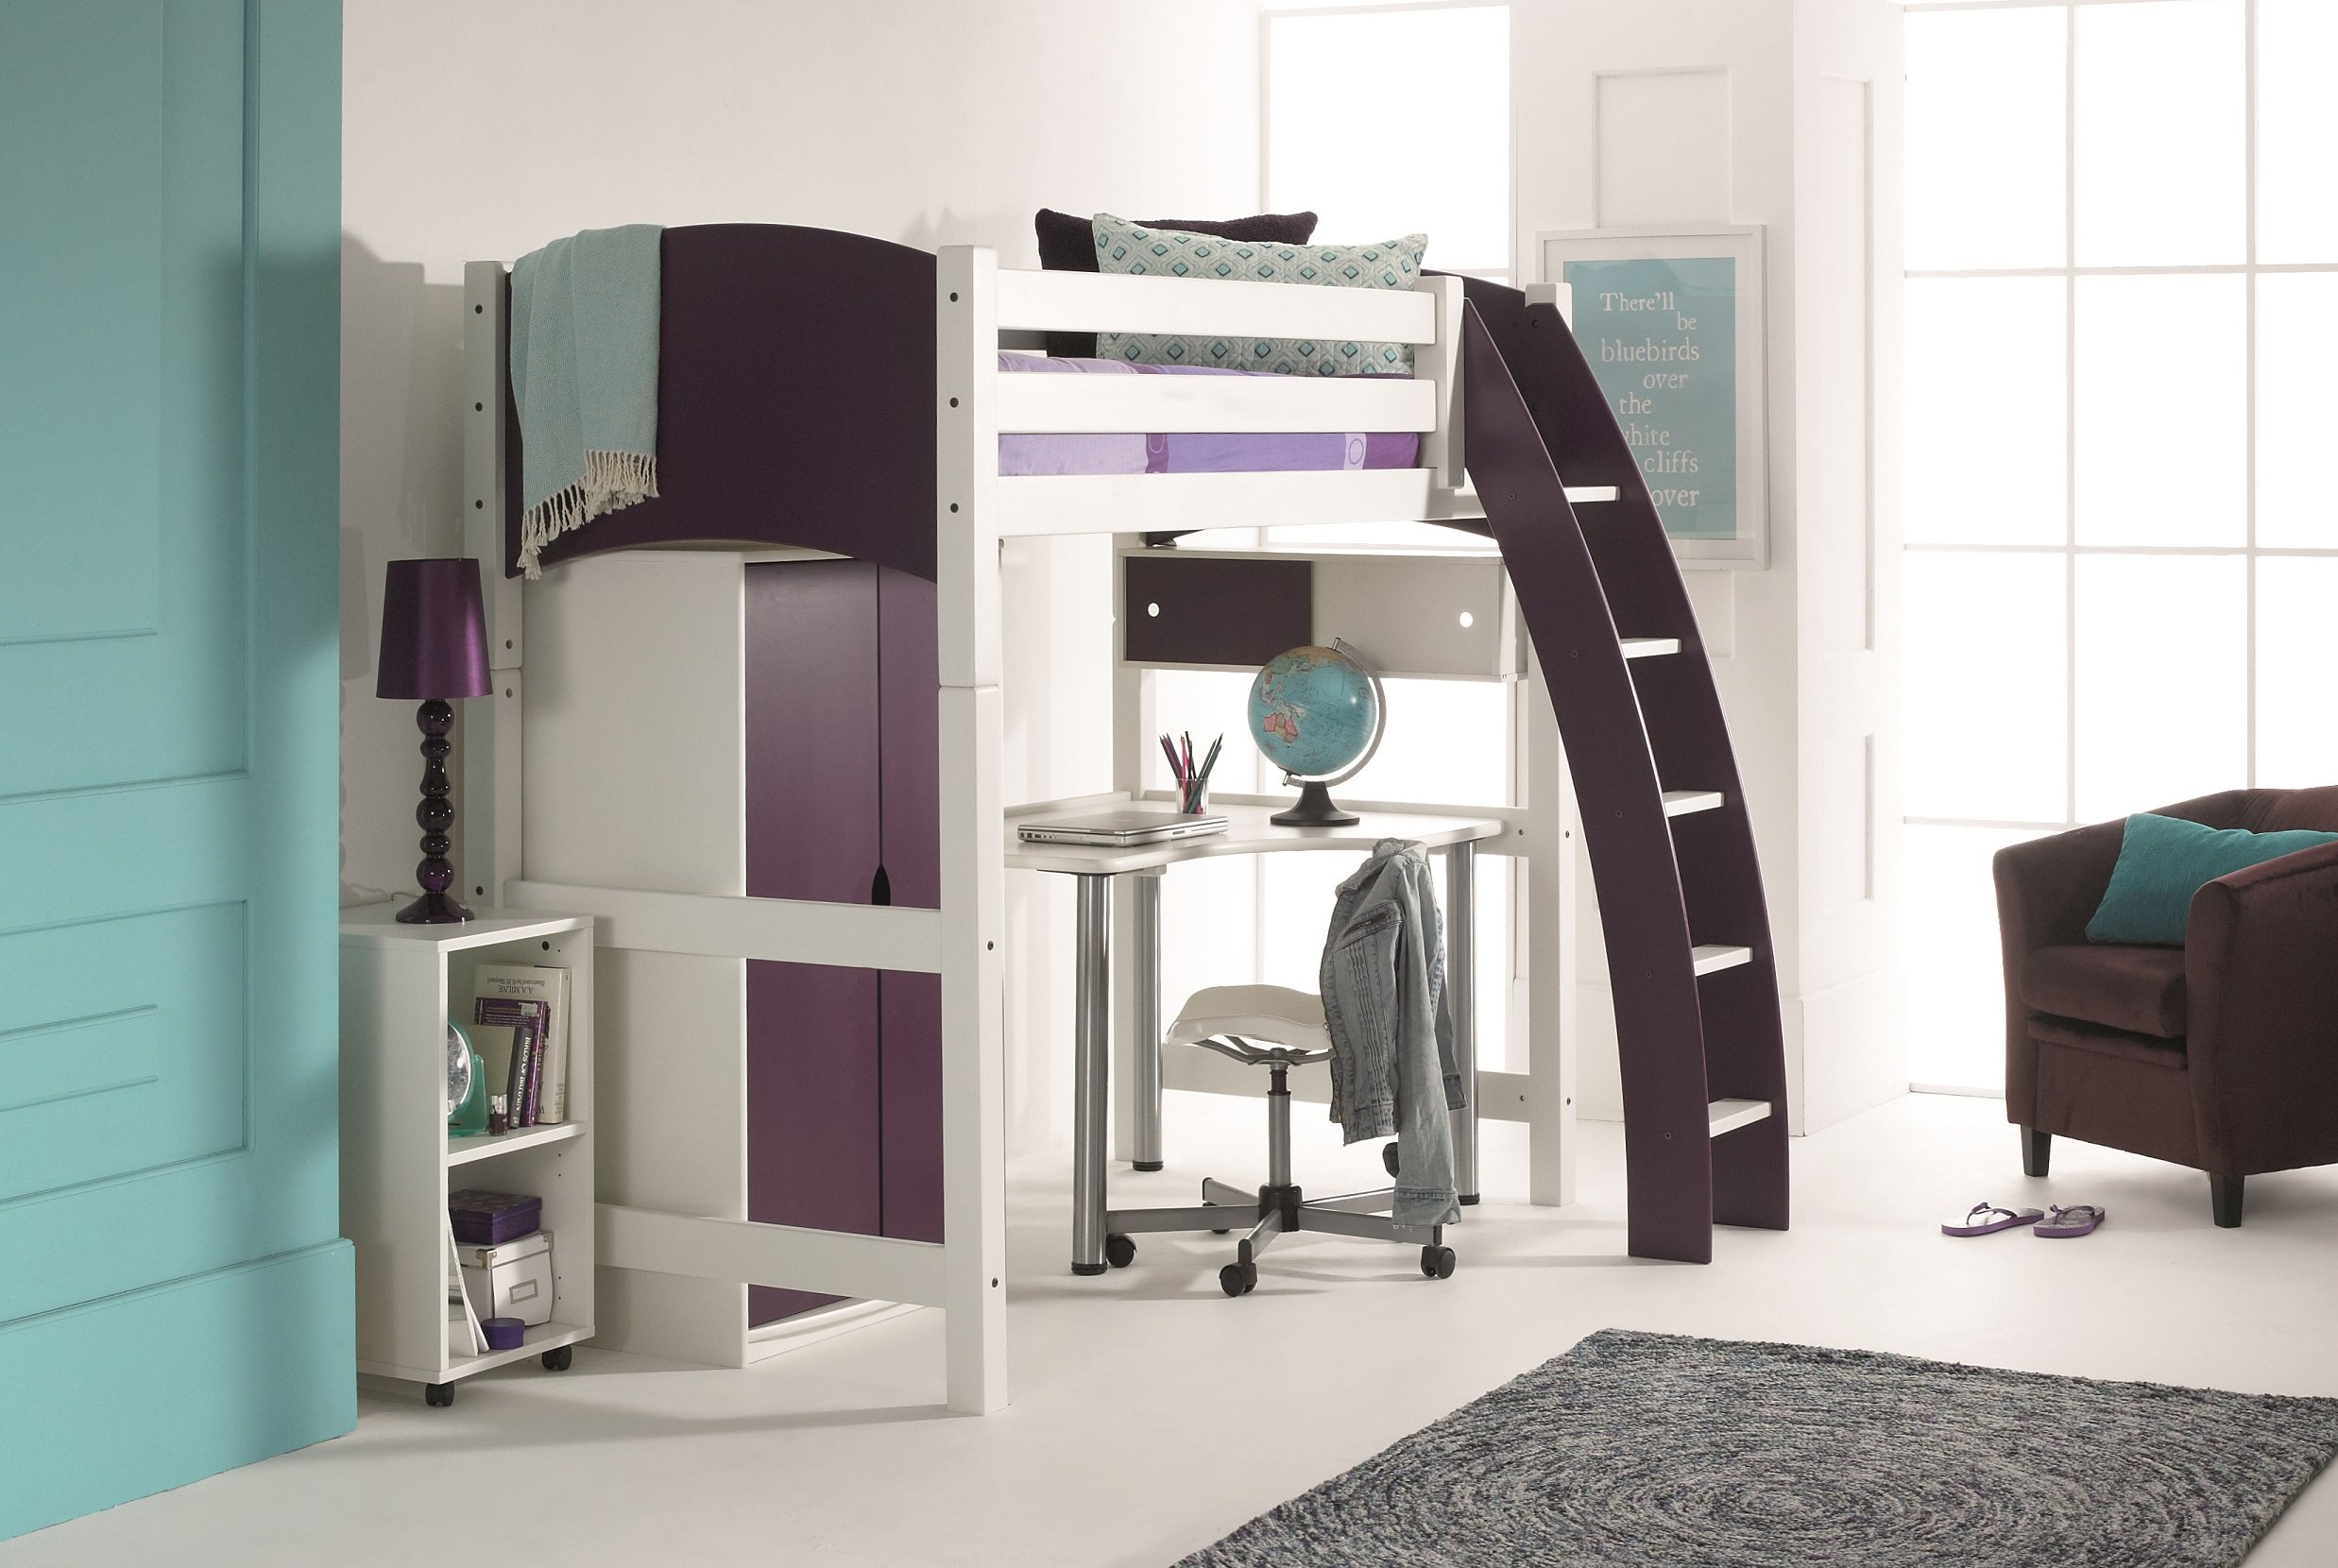 Scallywag Convertible High Sleeper Bed With Wardrobe Unit Free - Scallywags bedroom furniture